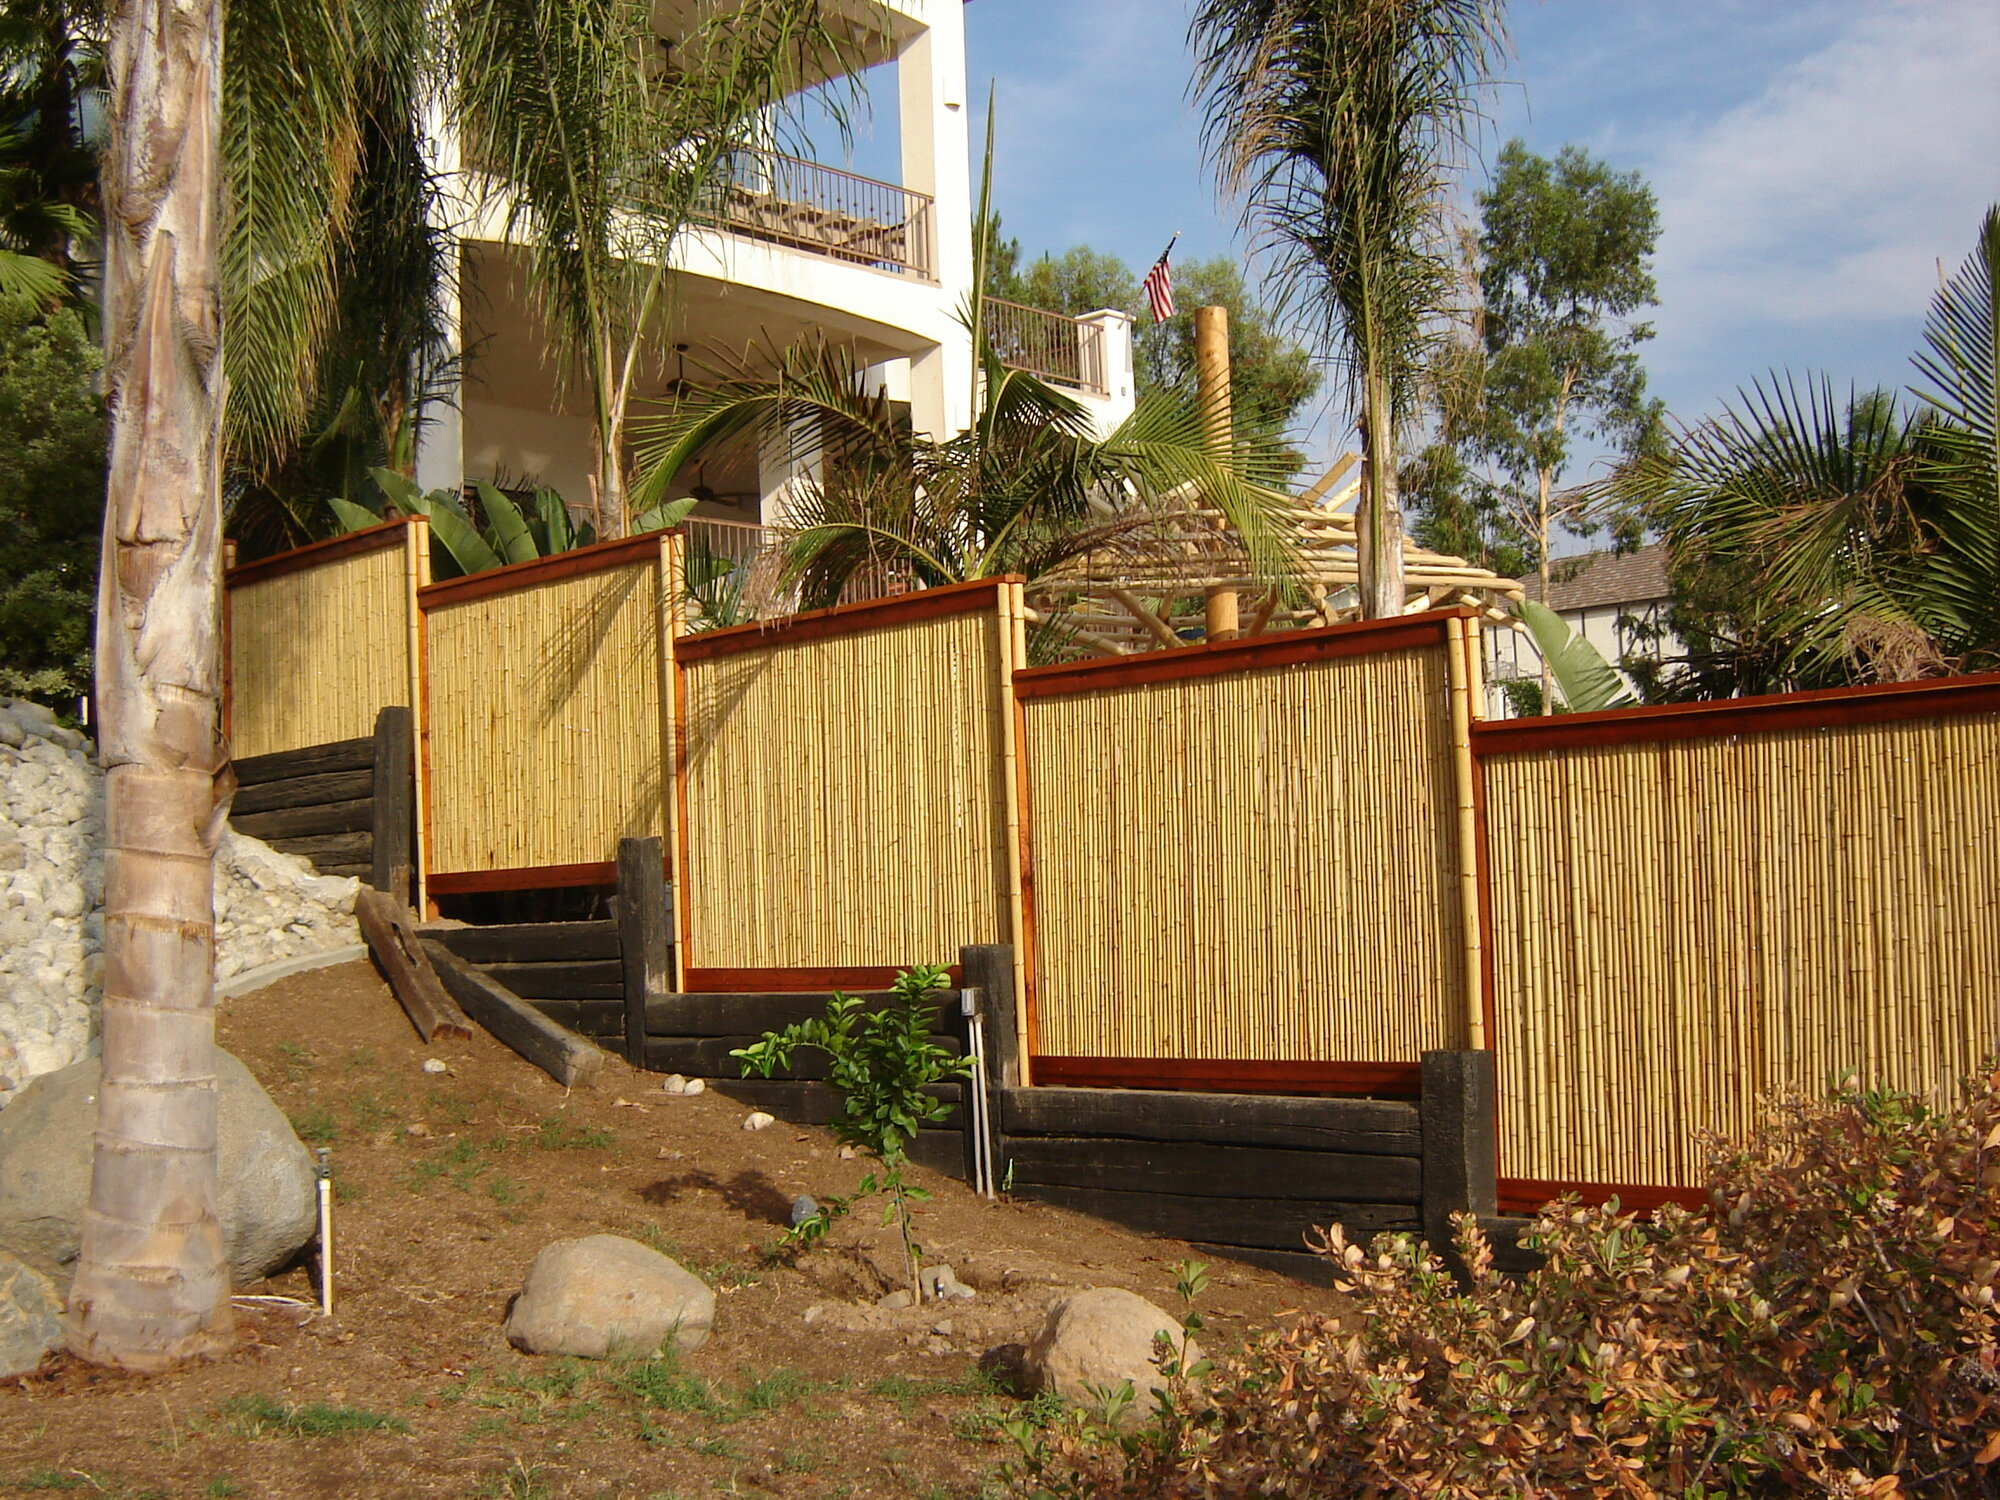 Backyard X-Scapes Rolled Bamboo Fencing   eBay